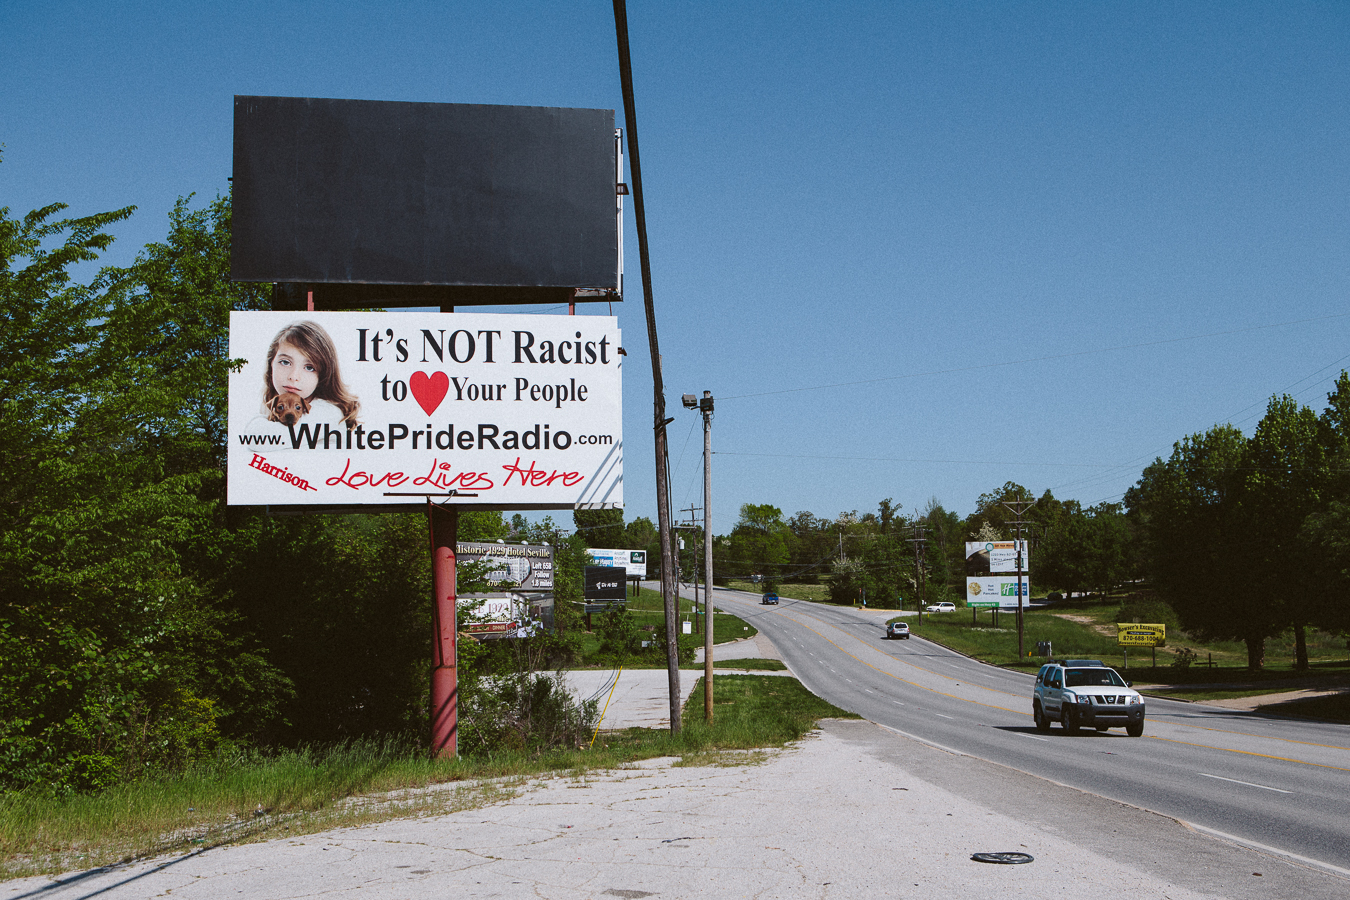 """My jaw dropped when I saw this. I'm considering placingan ad on the billboard above, stating- """"It's okto love your people, just love outside your immediate family. www.StopIncest.com"""""""